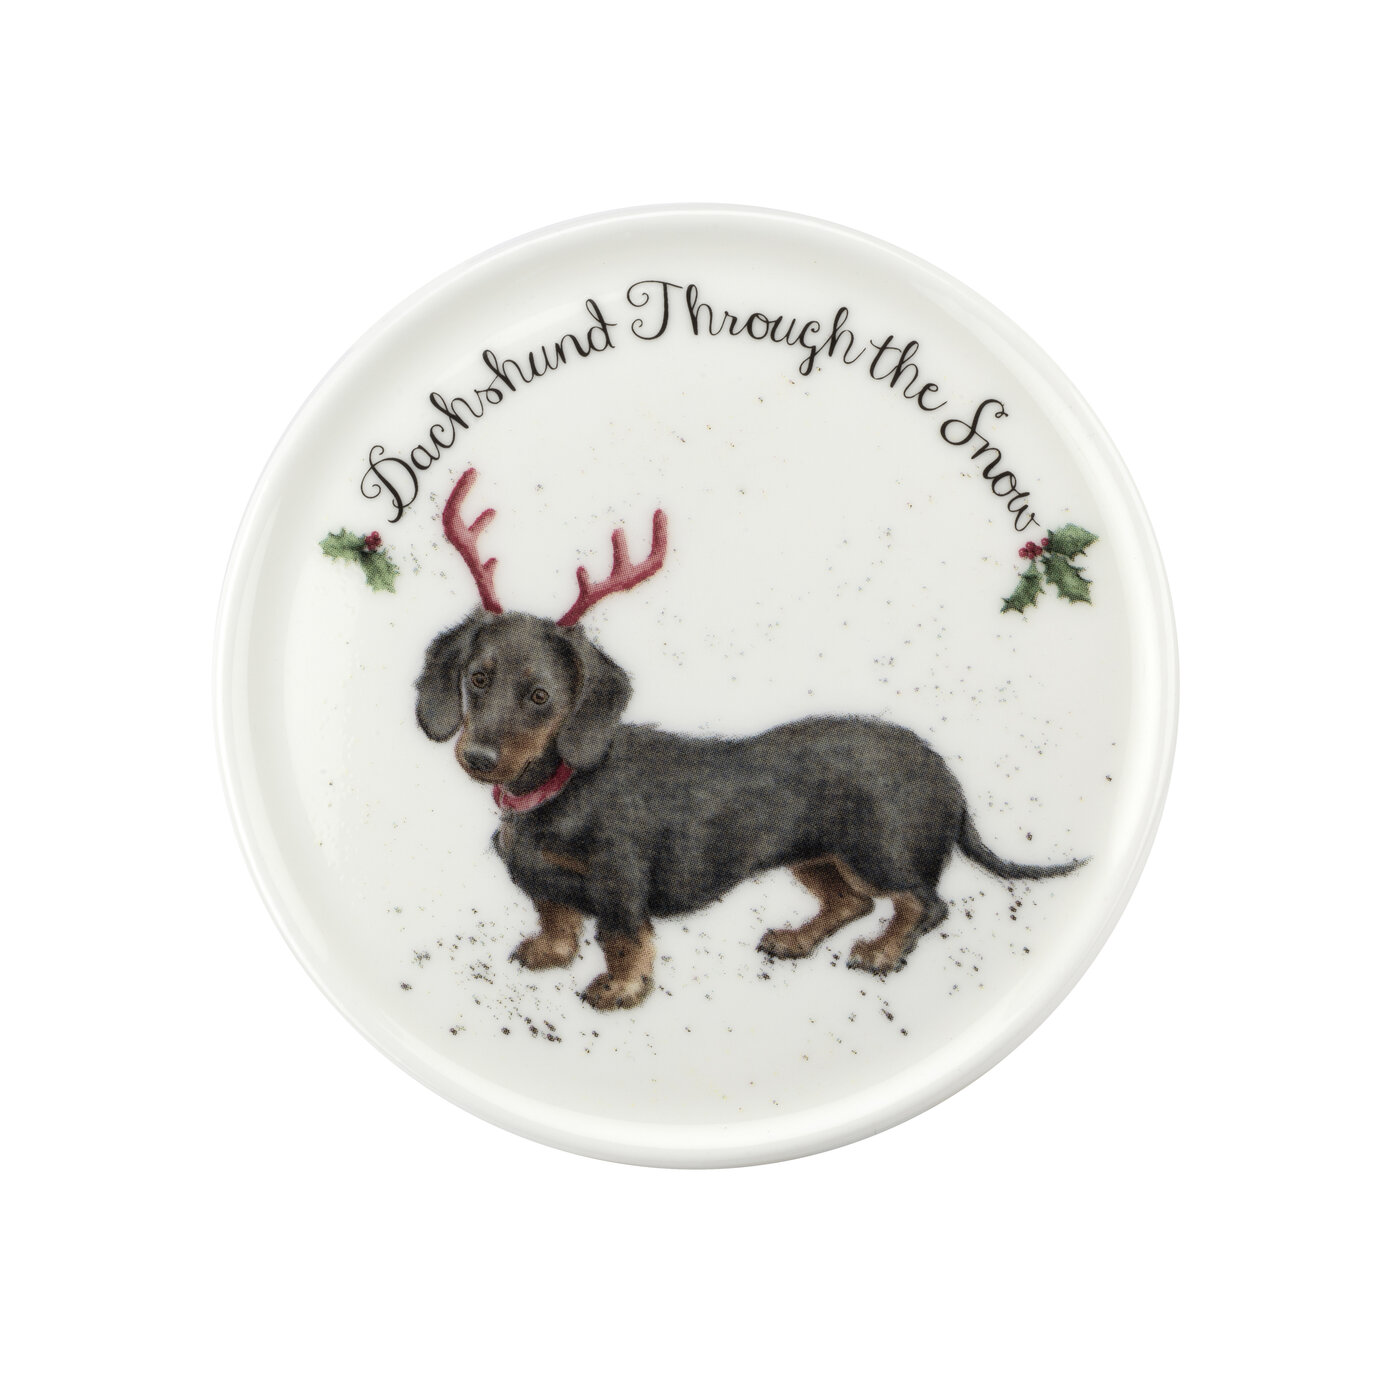 Royal Worcester Wrendale Designs 11 oz Mug & Coaster Set Dachshund Through The Snow image number 2